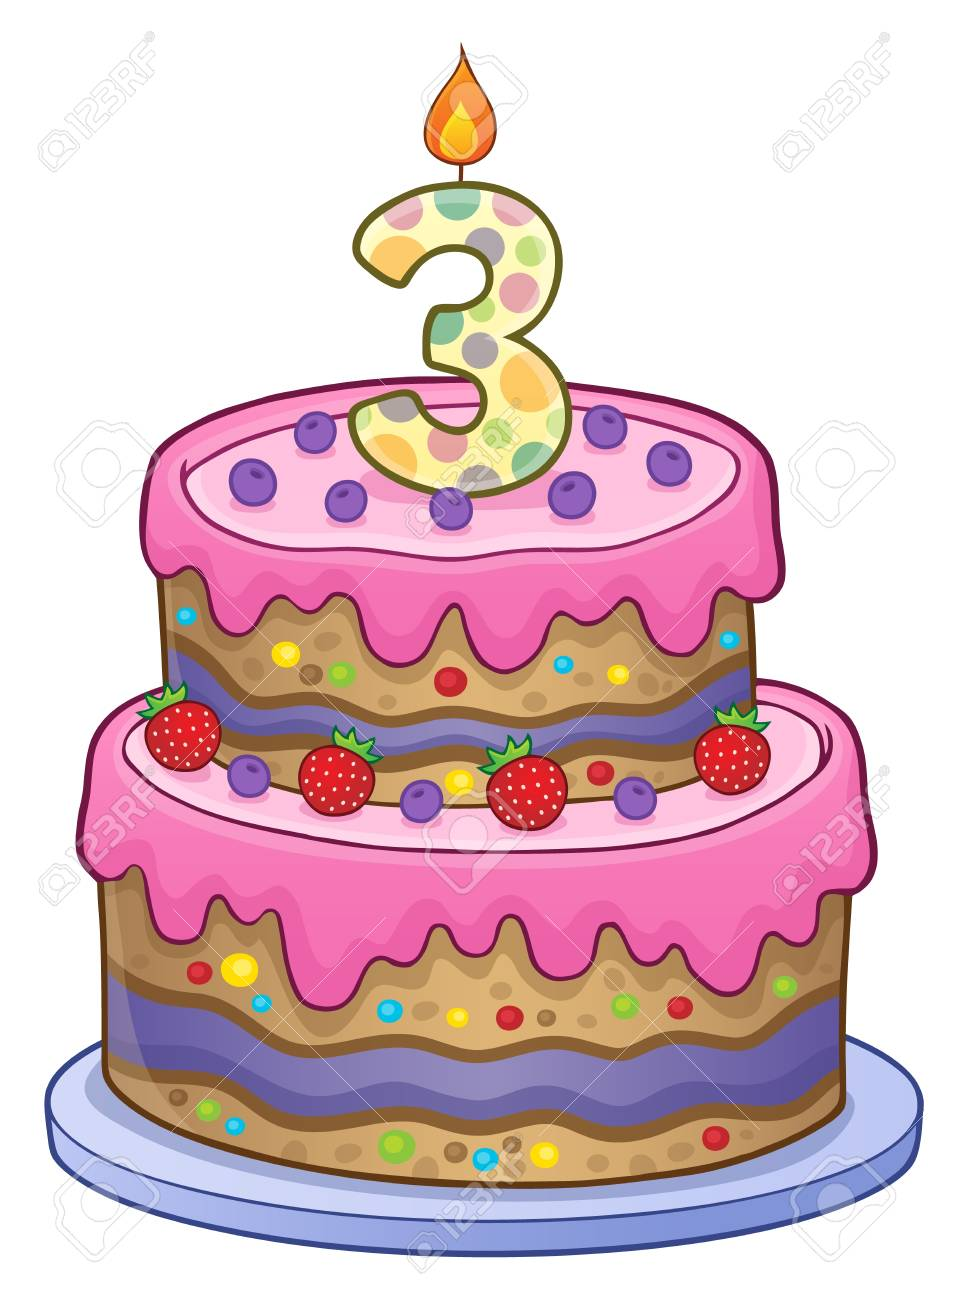 Two Layered Birthday Cake For 3 Years Old Stock Vector